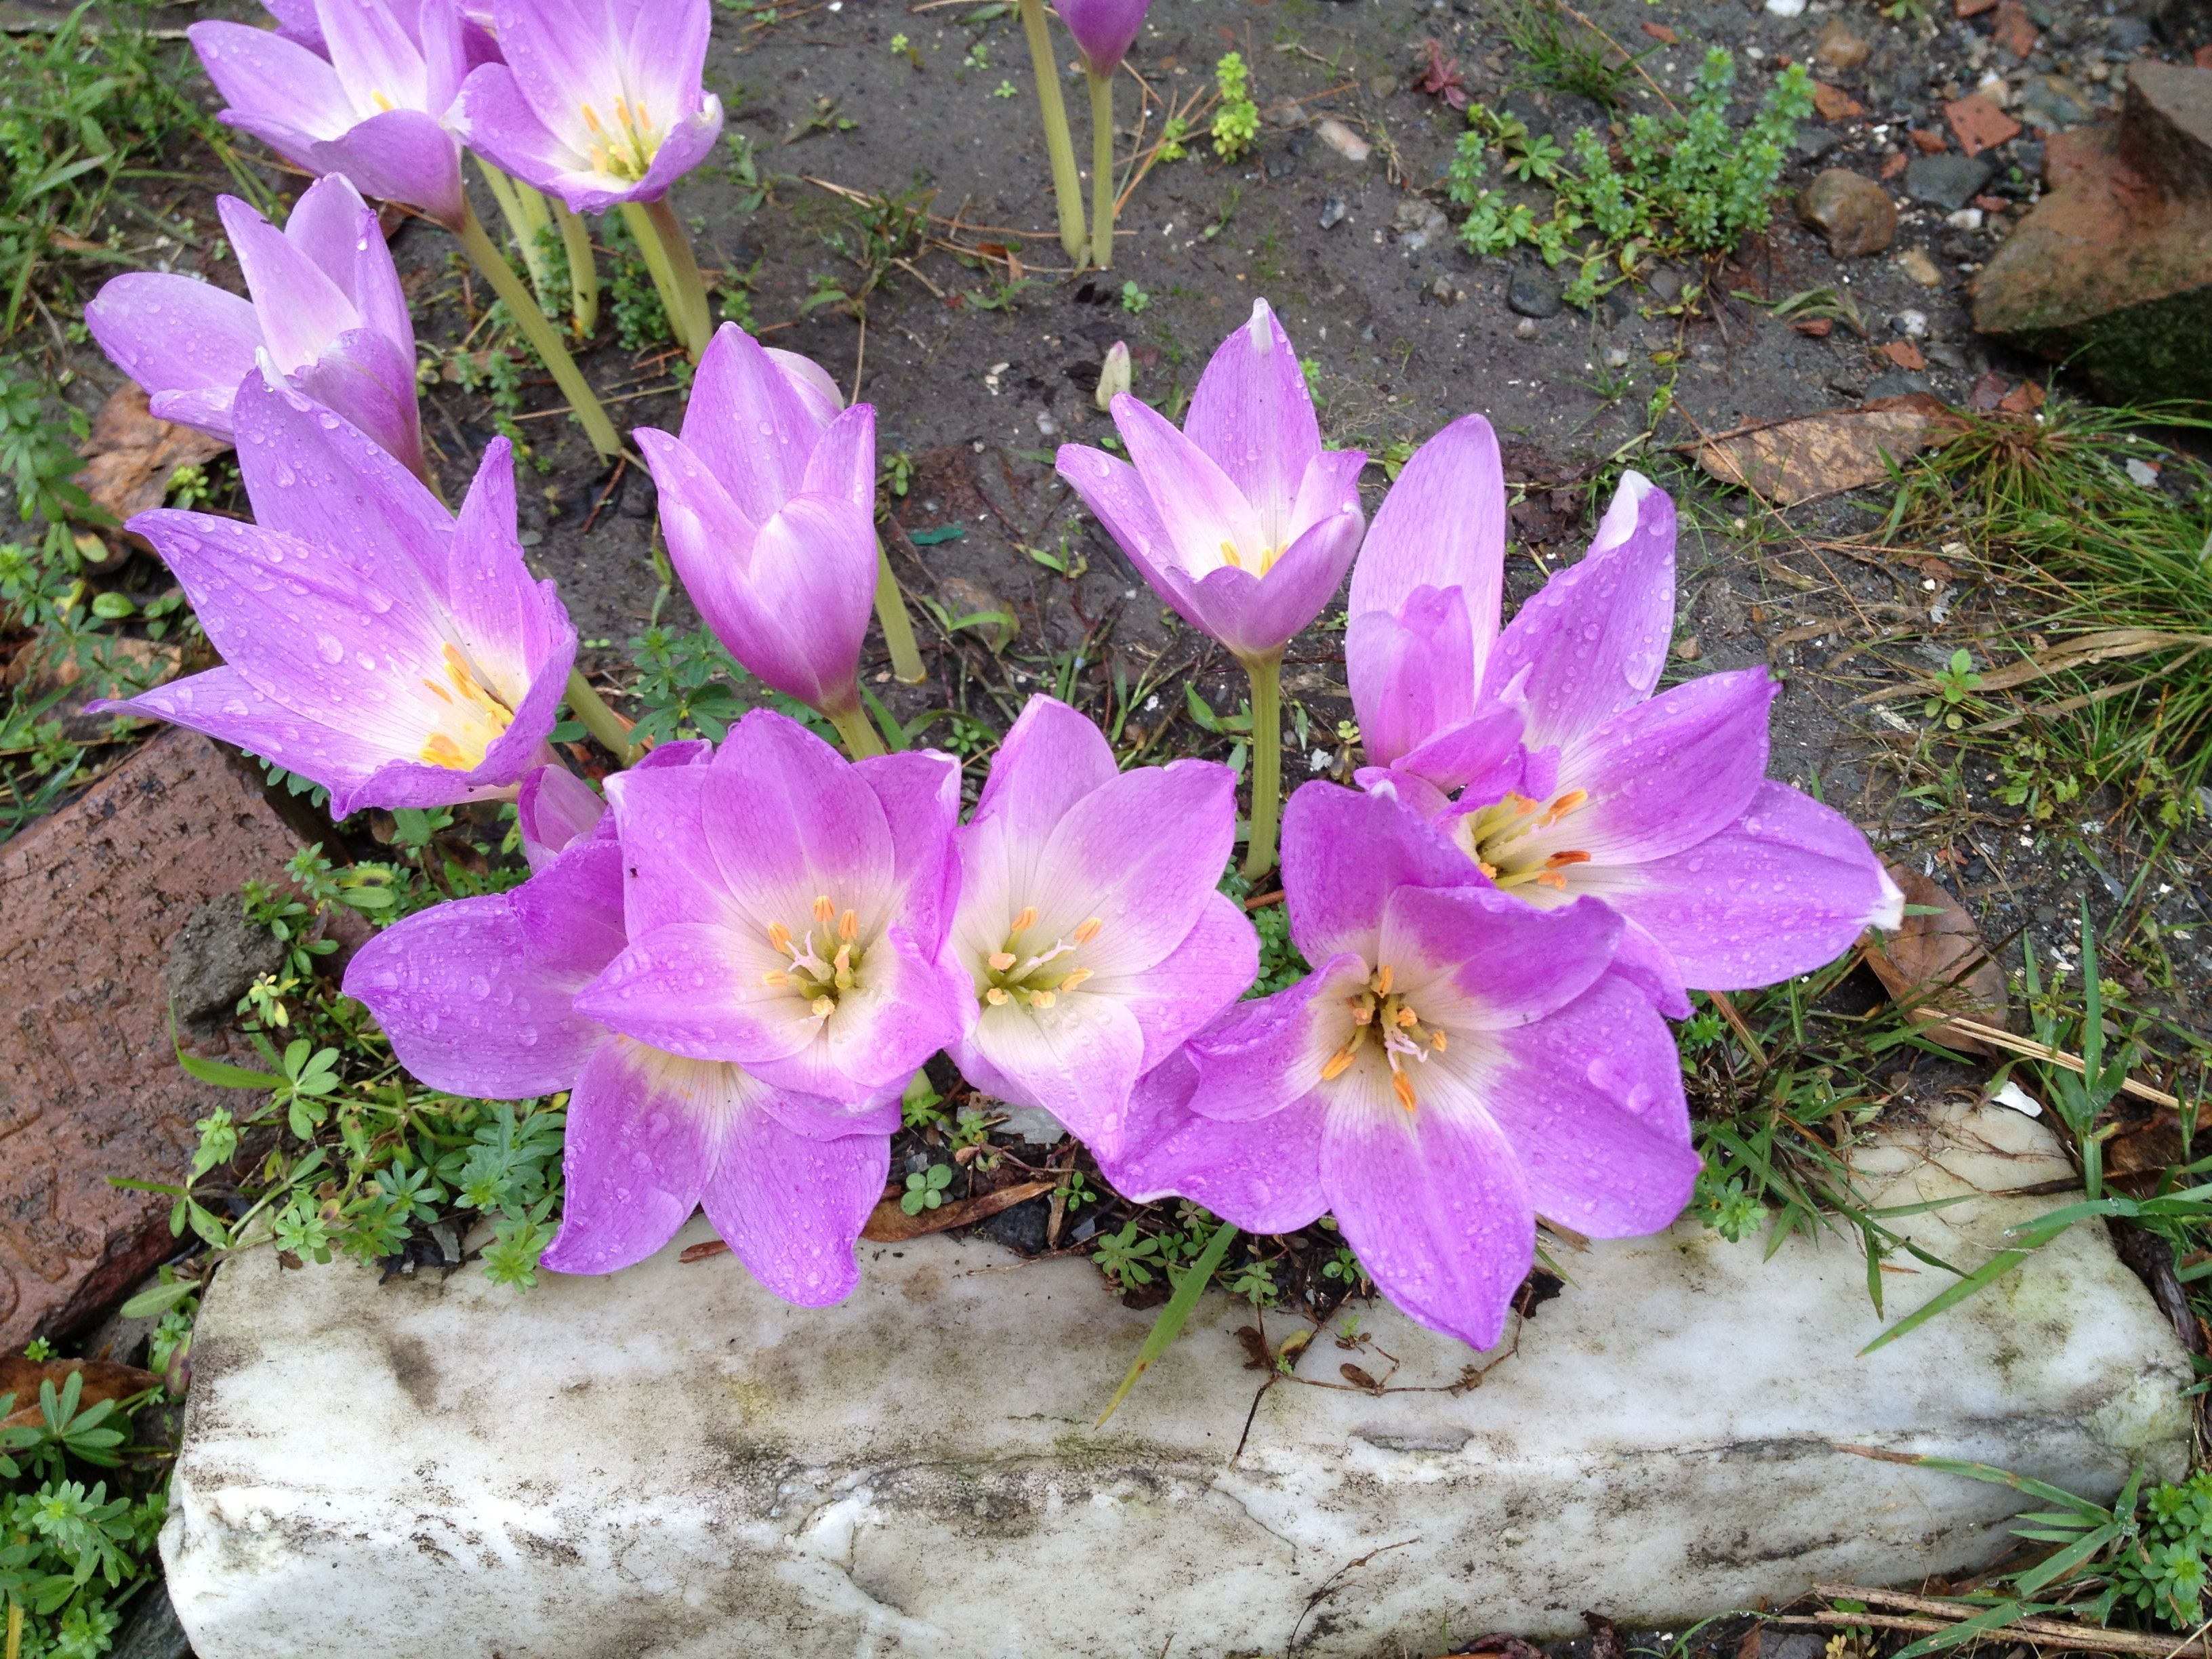 Fall Crocus Leaves Come Up In Spring Die Back And Flowers Bloom